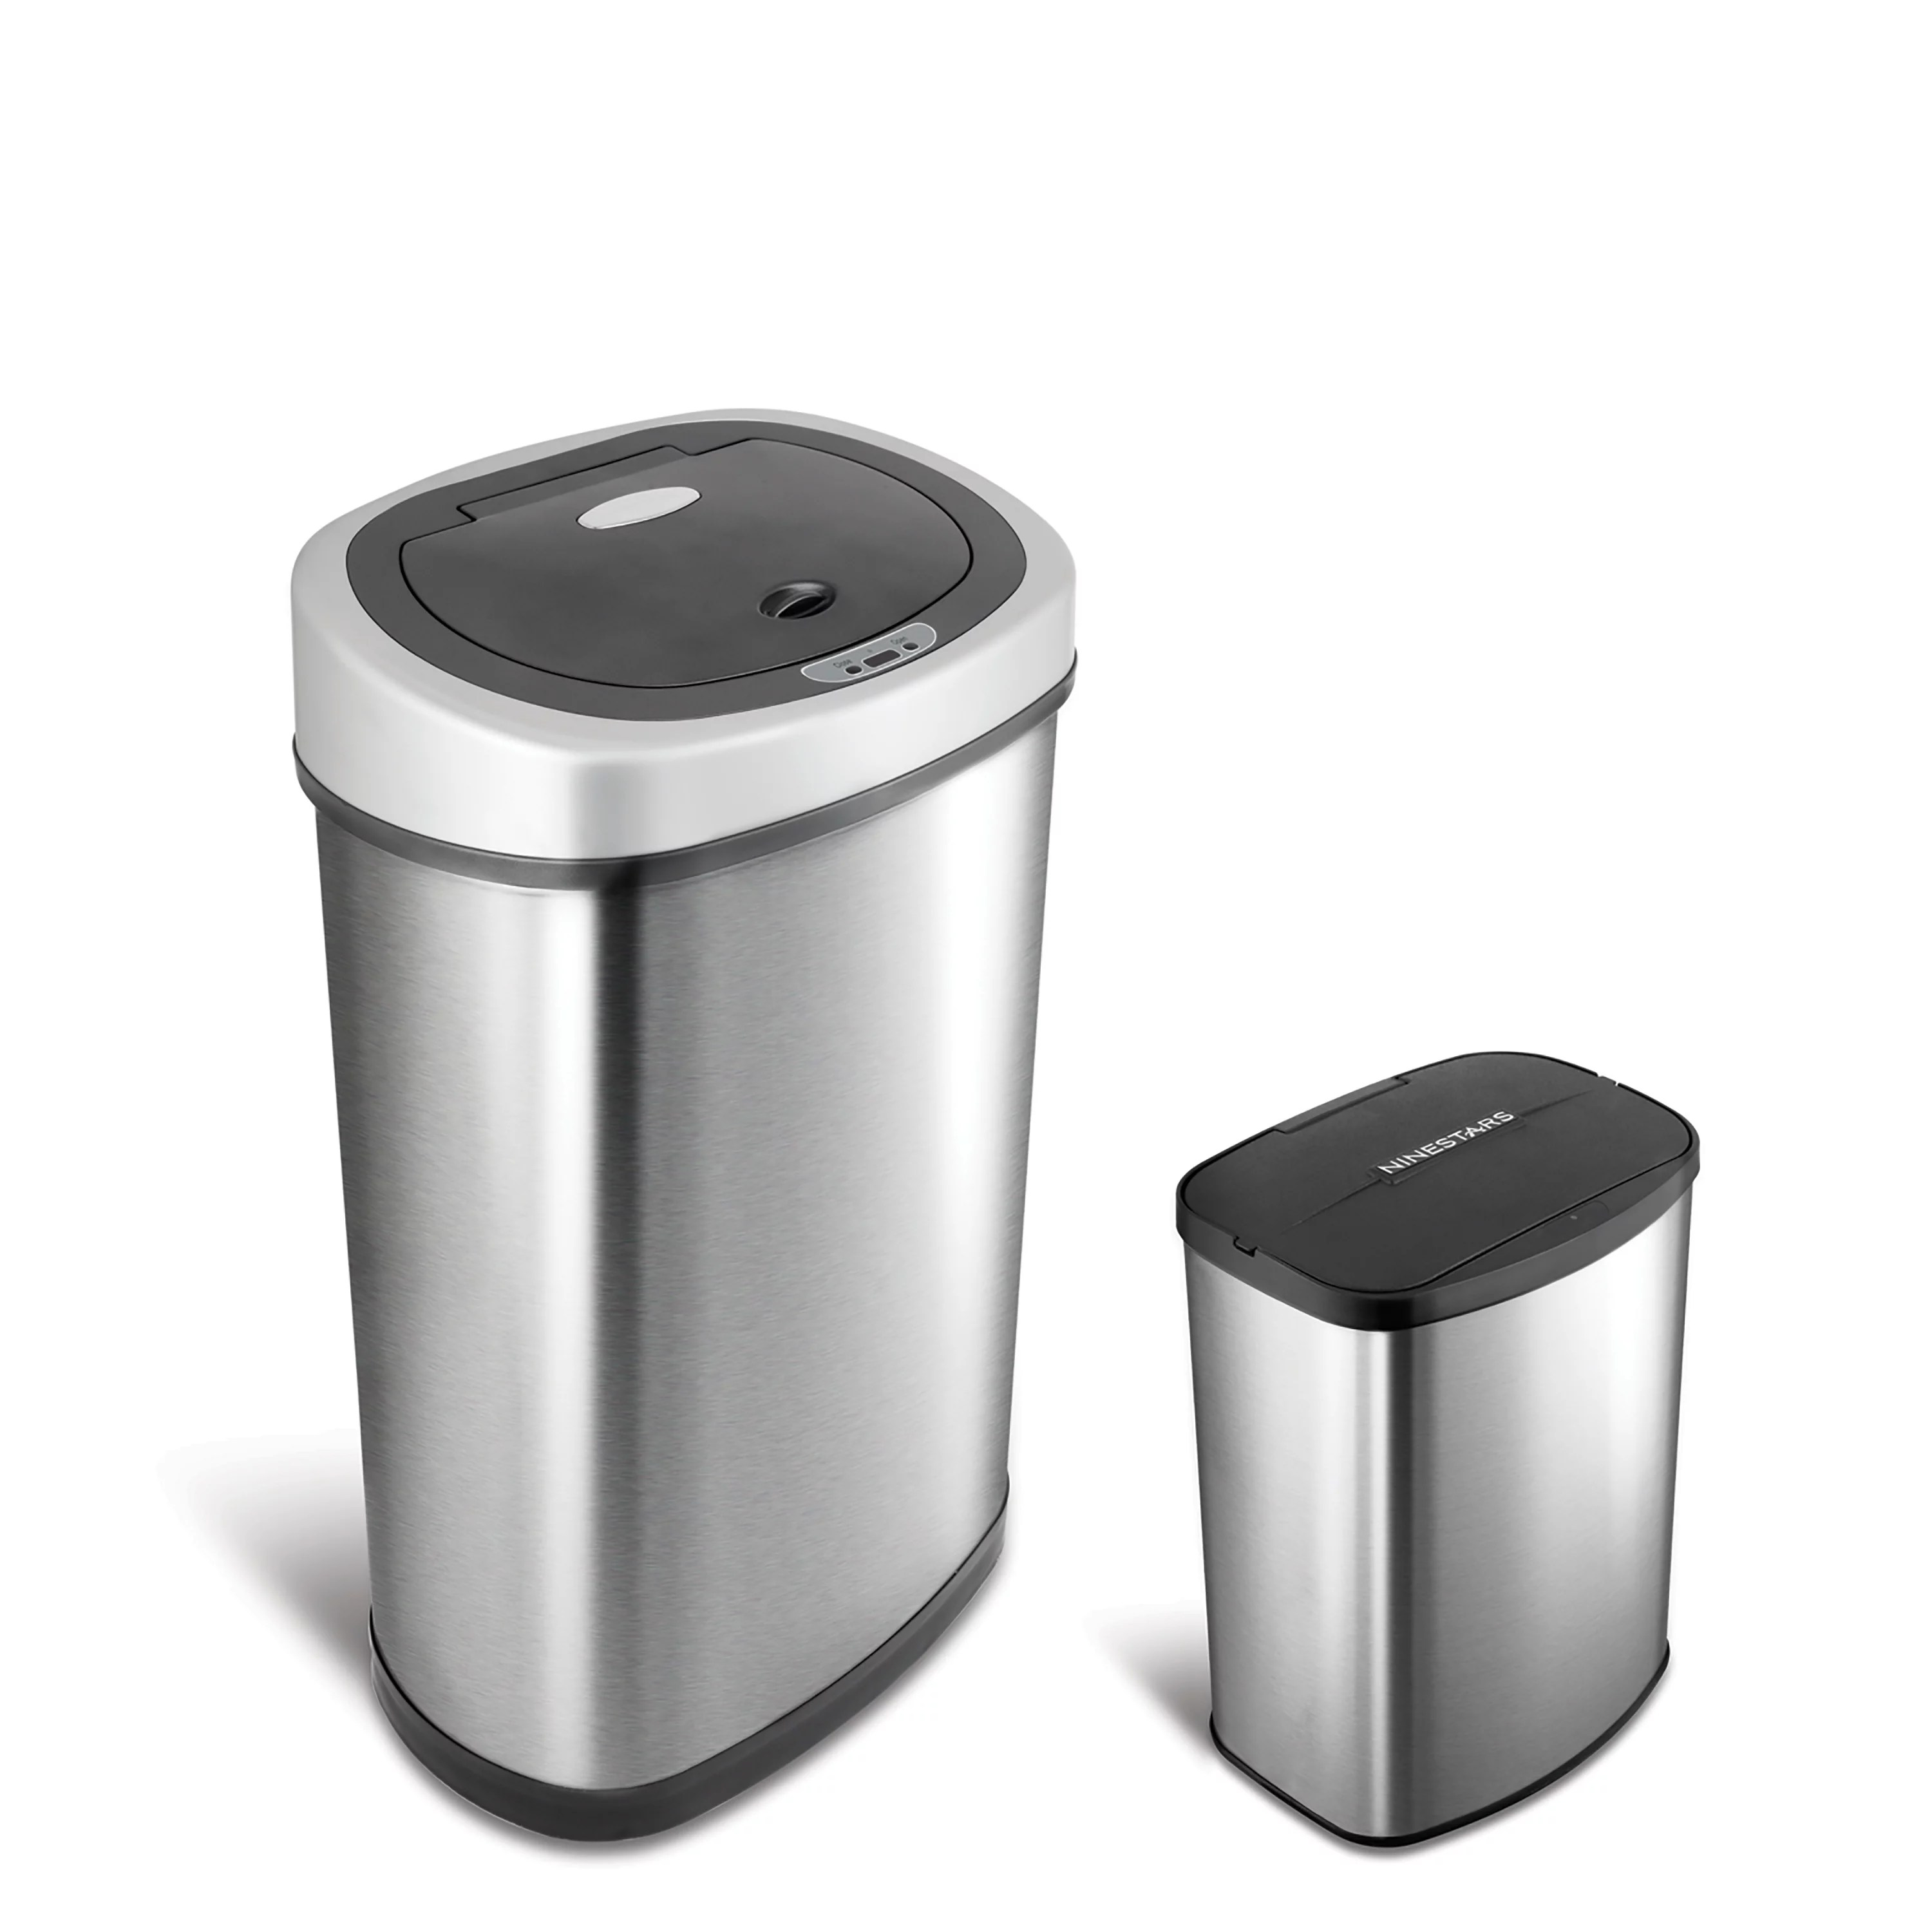 Laundry Trash Cans Nine Stars Motion Sensor Touchless 13 2 Gal 2 1 Gal Trash Can Combo Stainless Steel